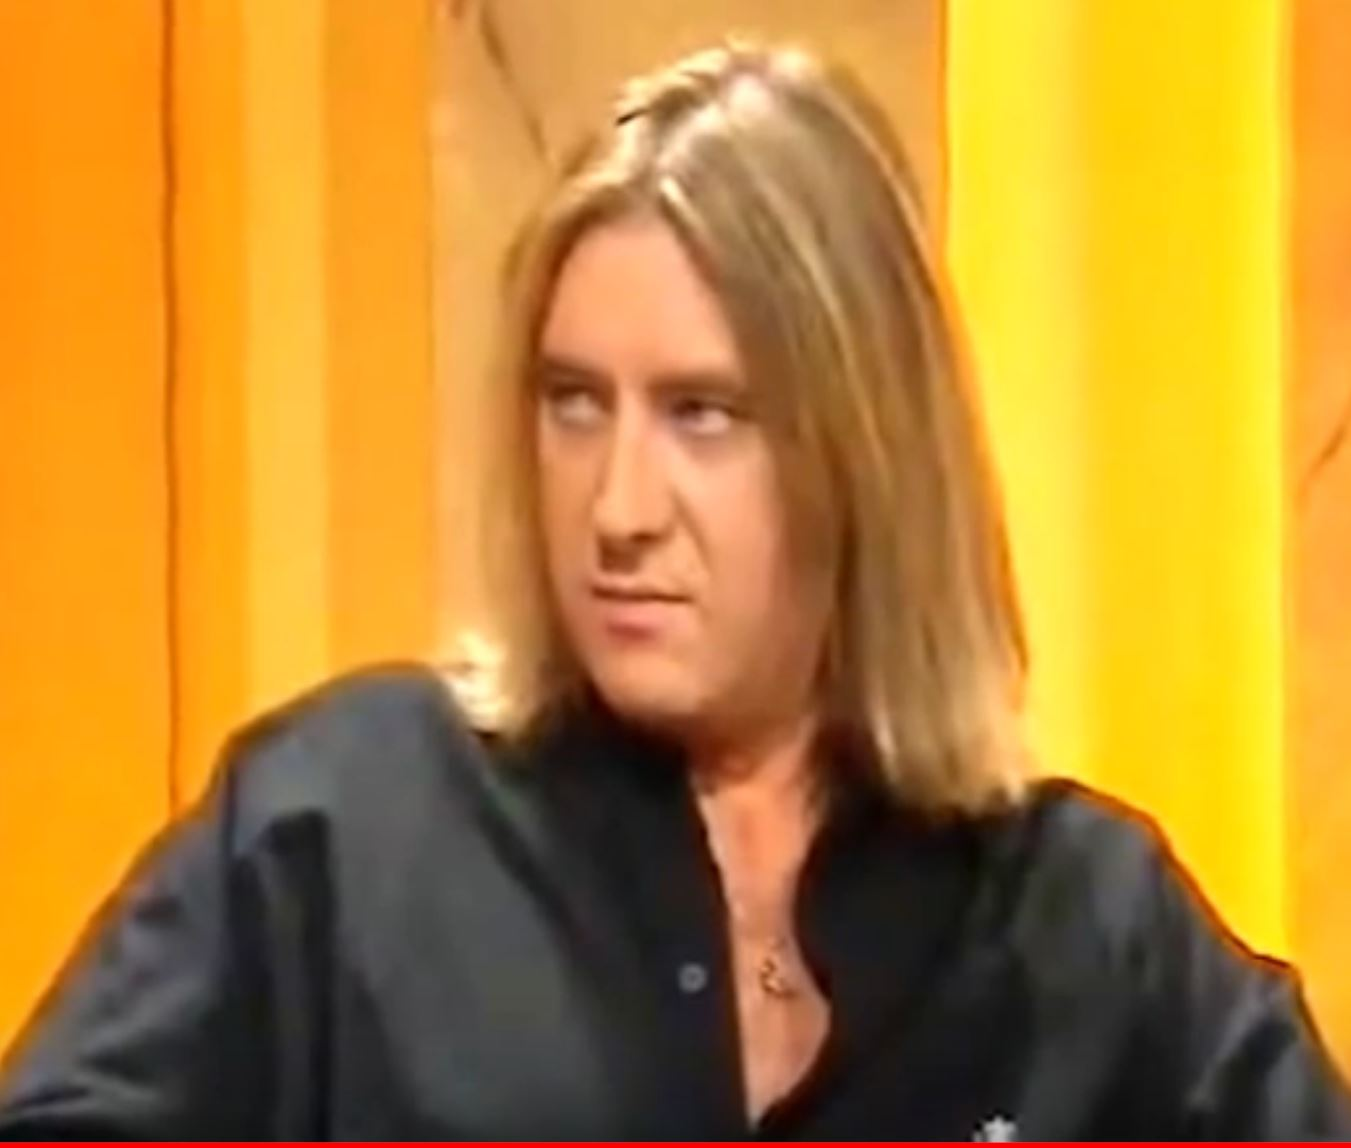 Joe Elliott looking bitchy